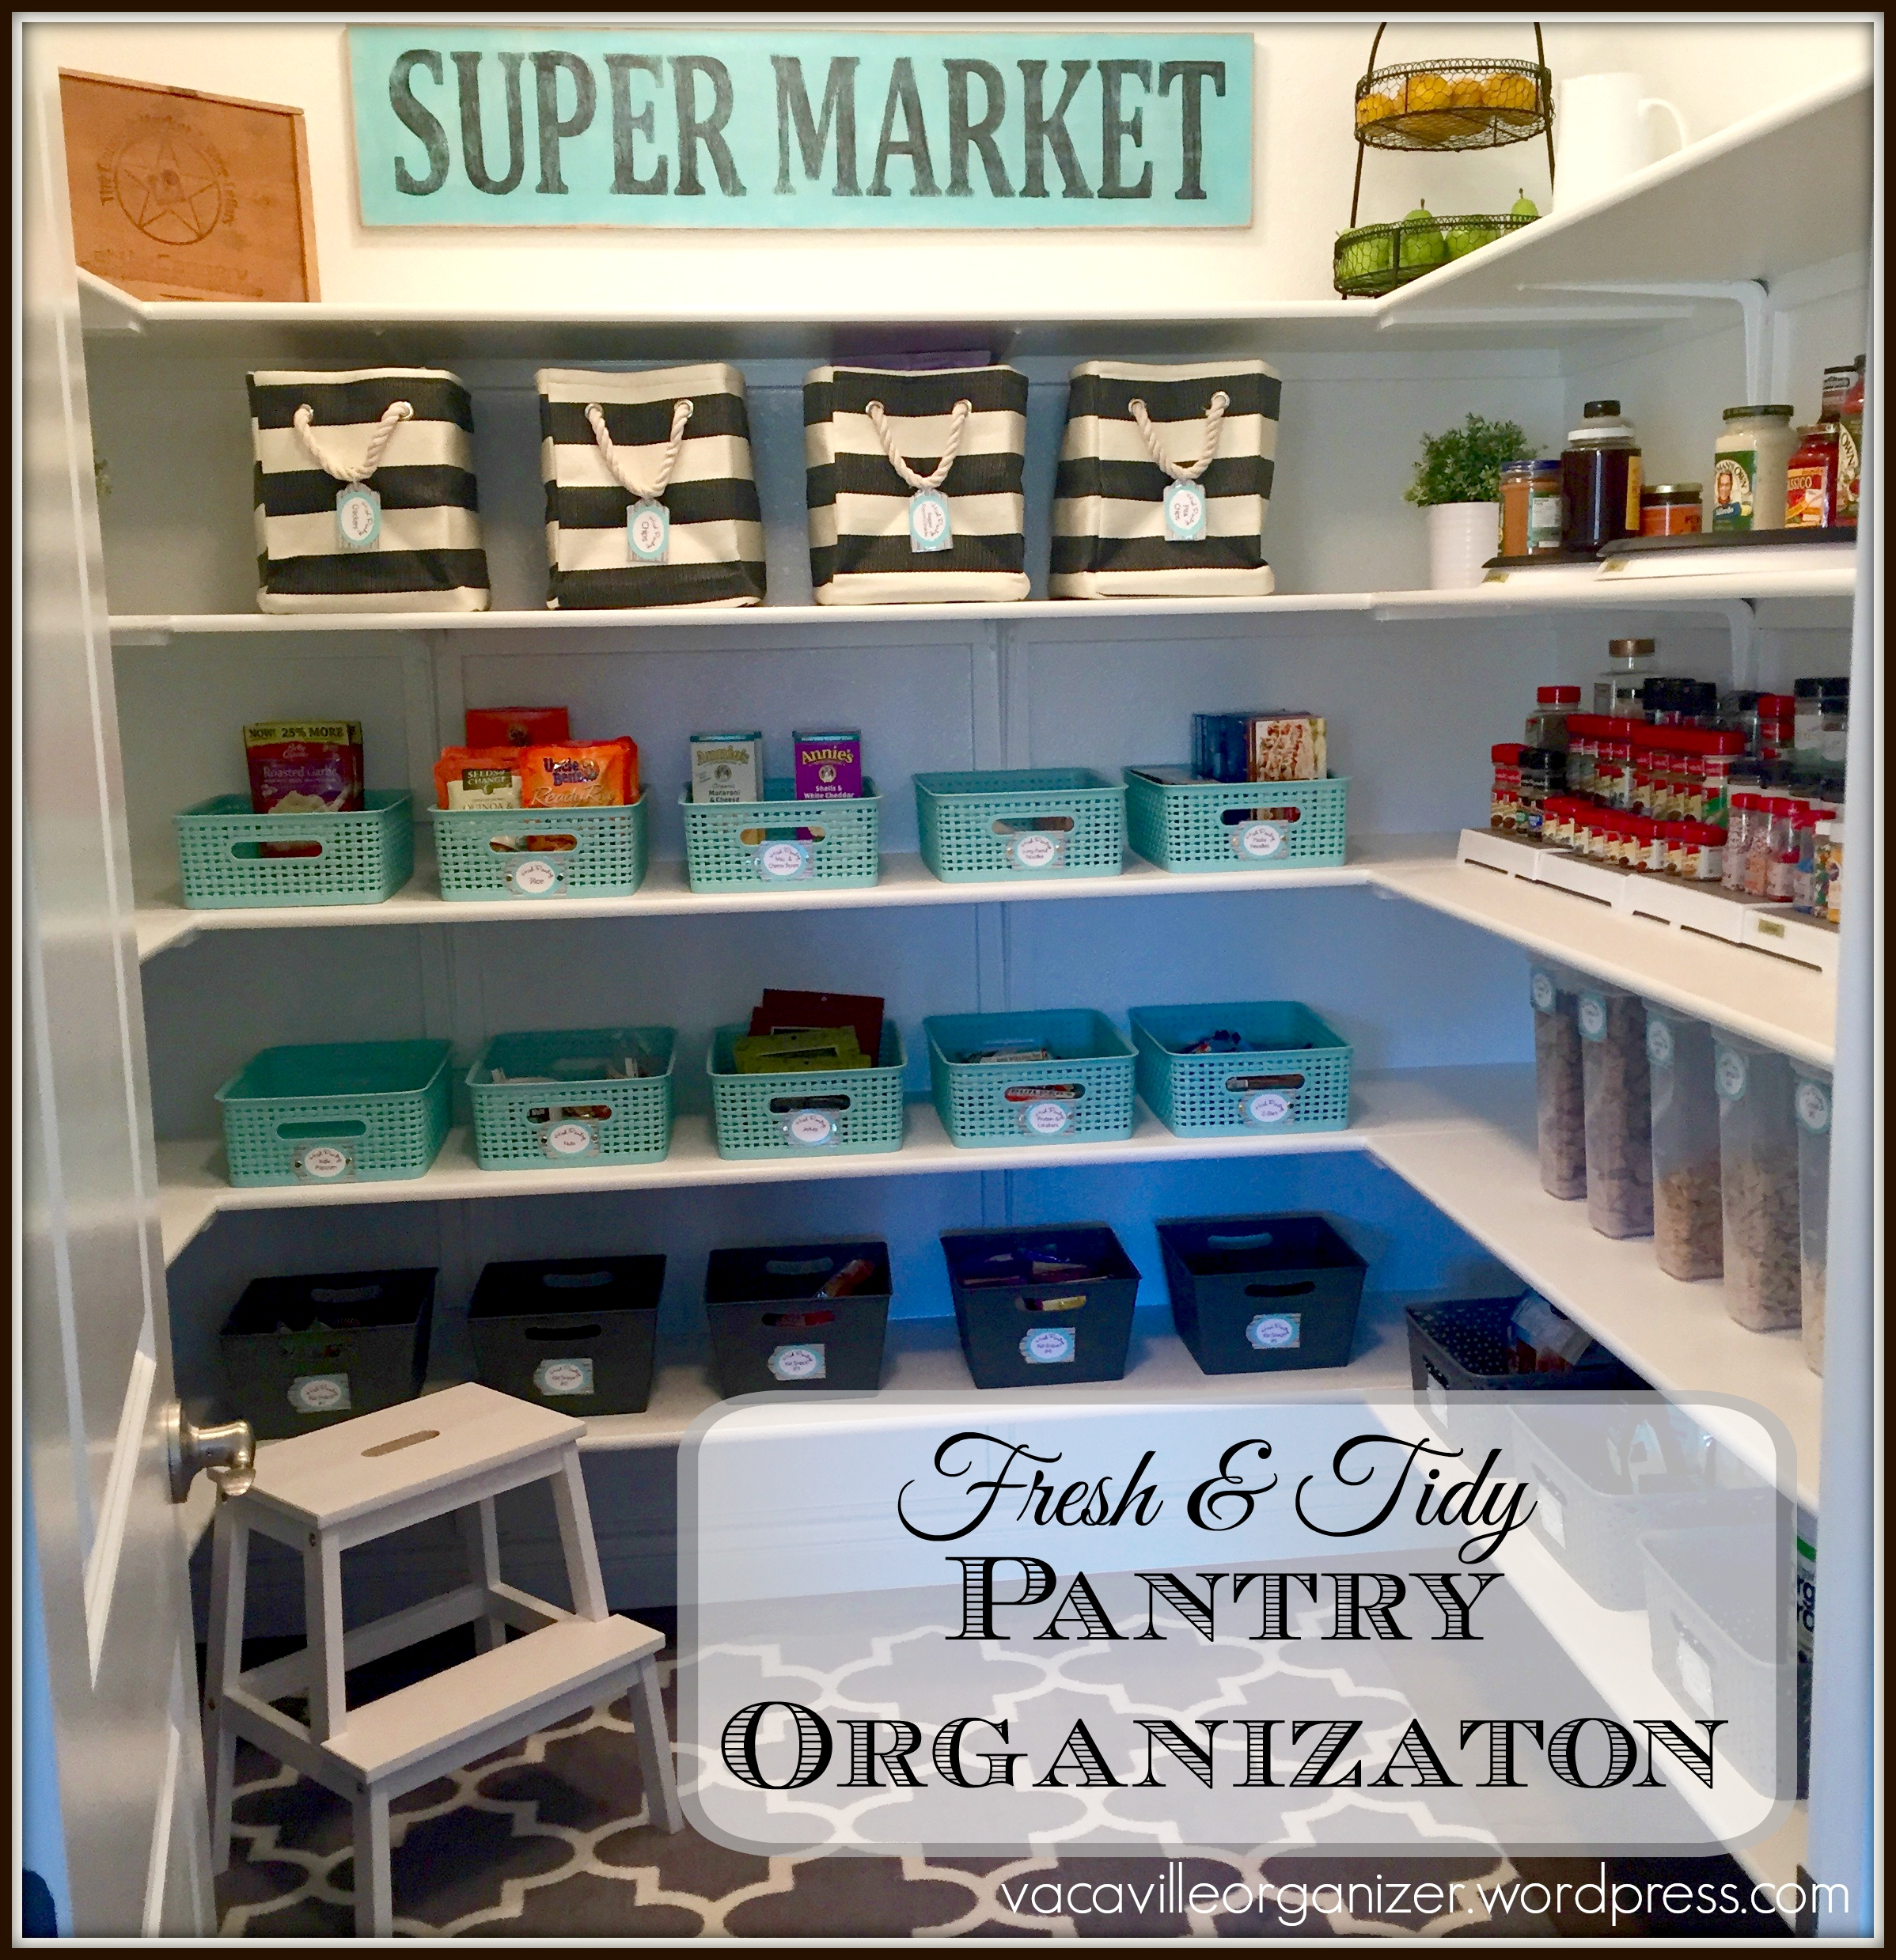 Kitchen Organization – Vacaville Organizer...the blog